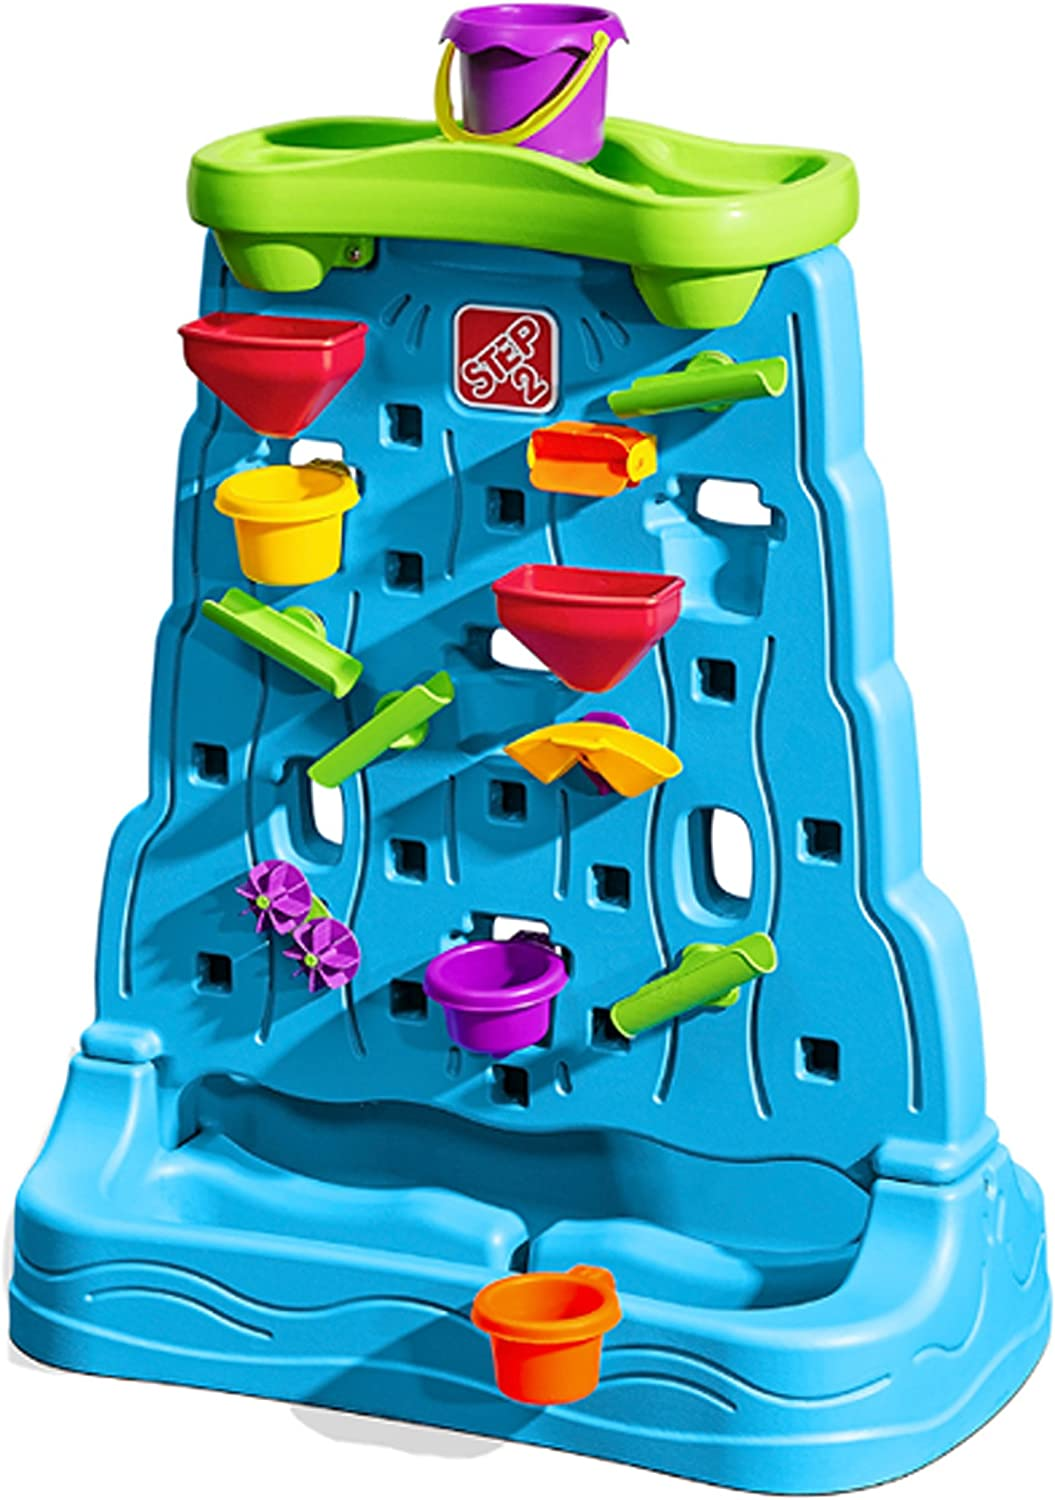 Top 10 Best Water Toys For Toddlers (2020 Reviews & Buying Guide) 11